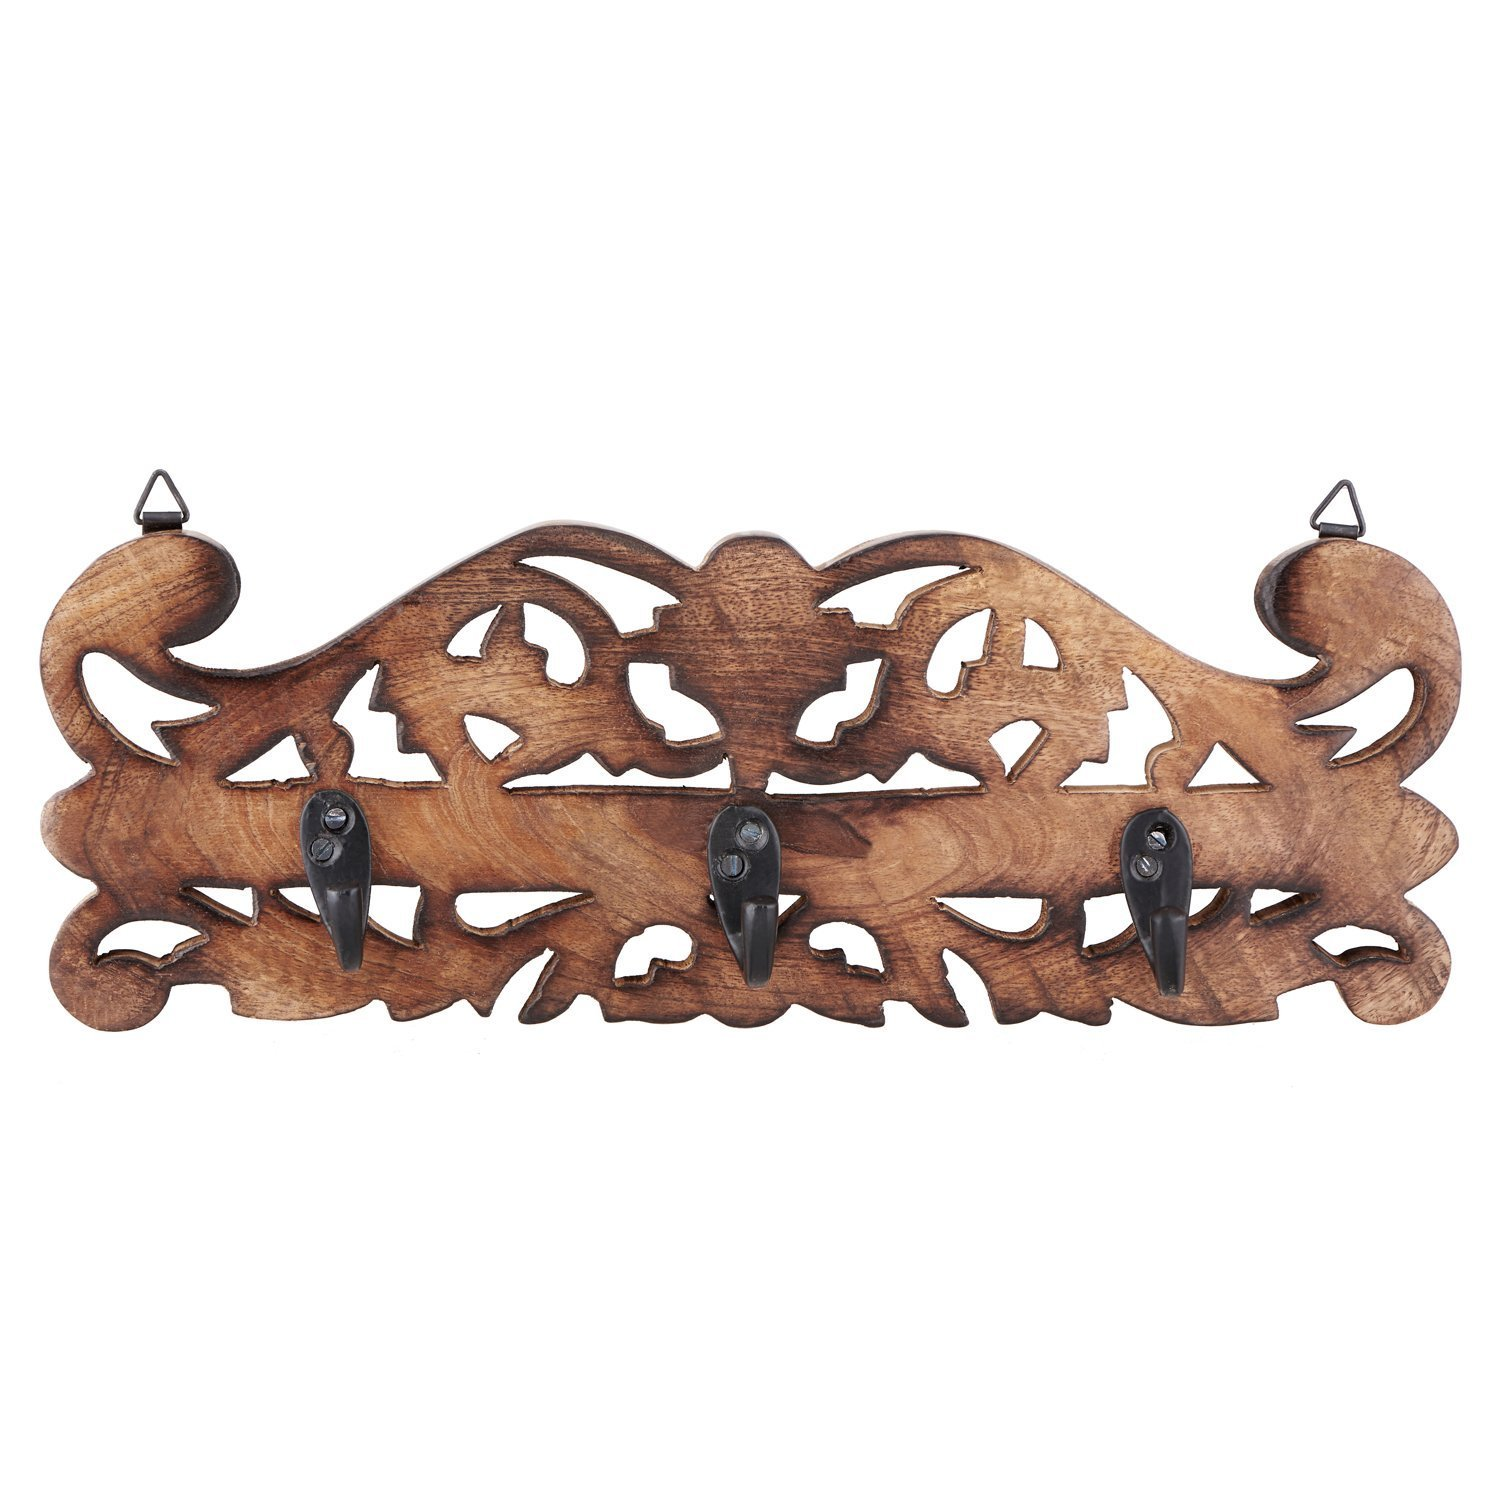 Mango wood 2 Wooden Decorative Wall Hook Key Holders Organizer Hanger Rack Coat Hangers For Office /& Home Decor